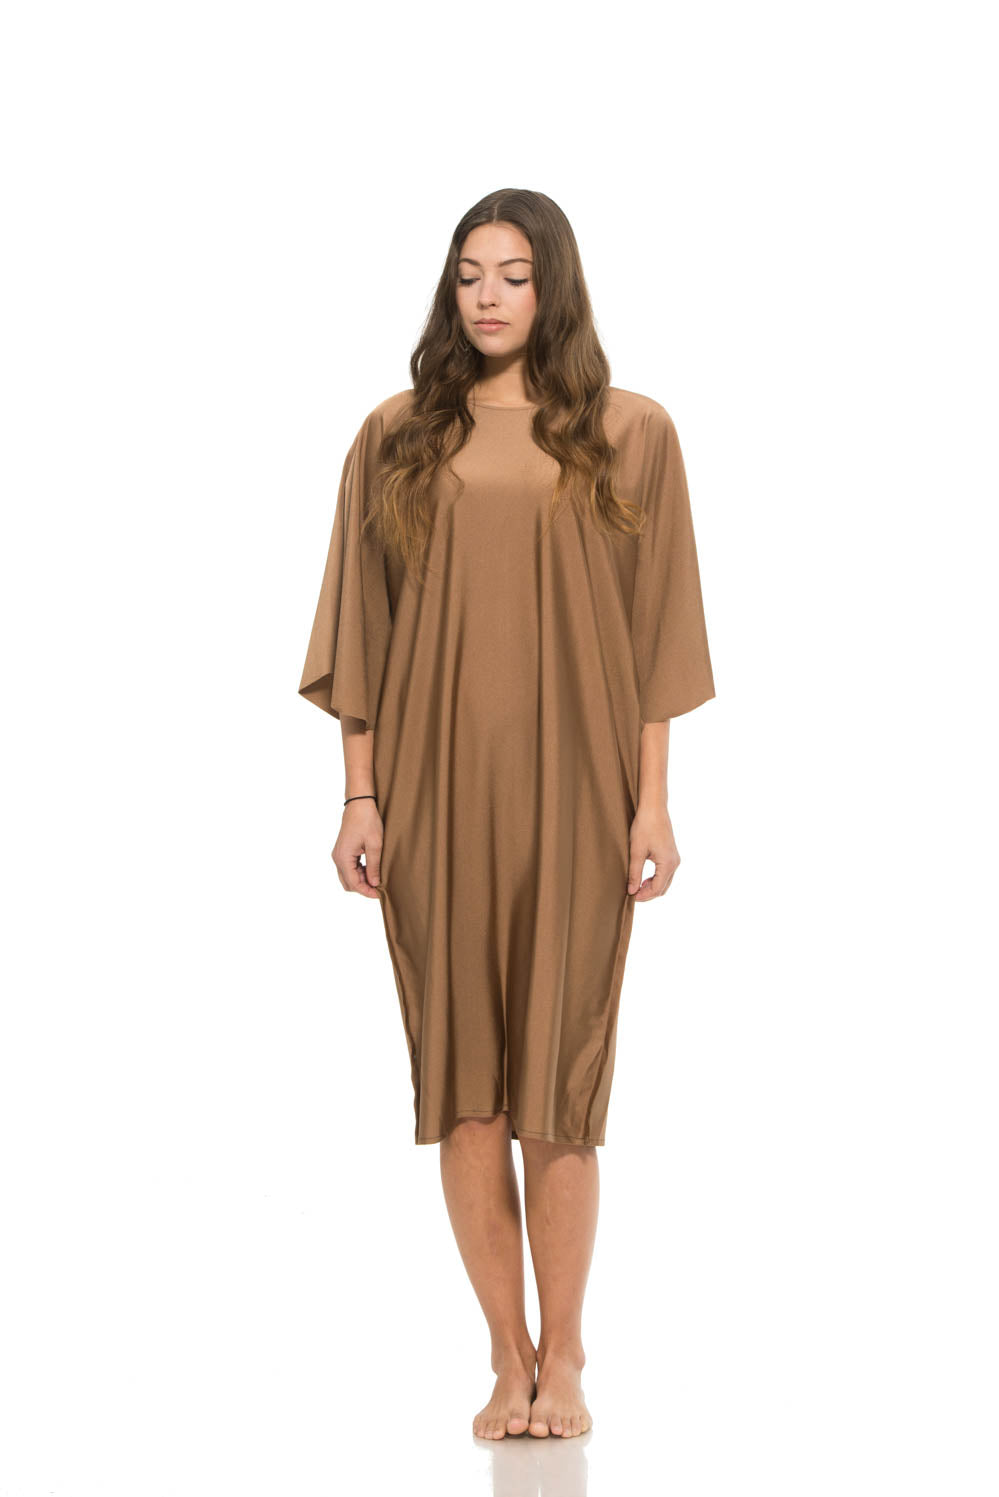 Nitza For Undercover - BRONZE Caftan Dress